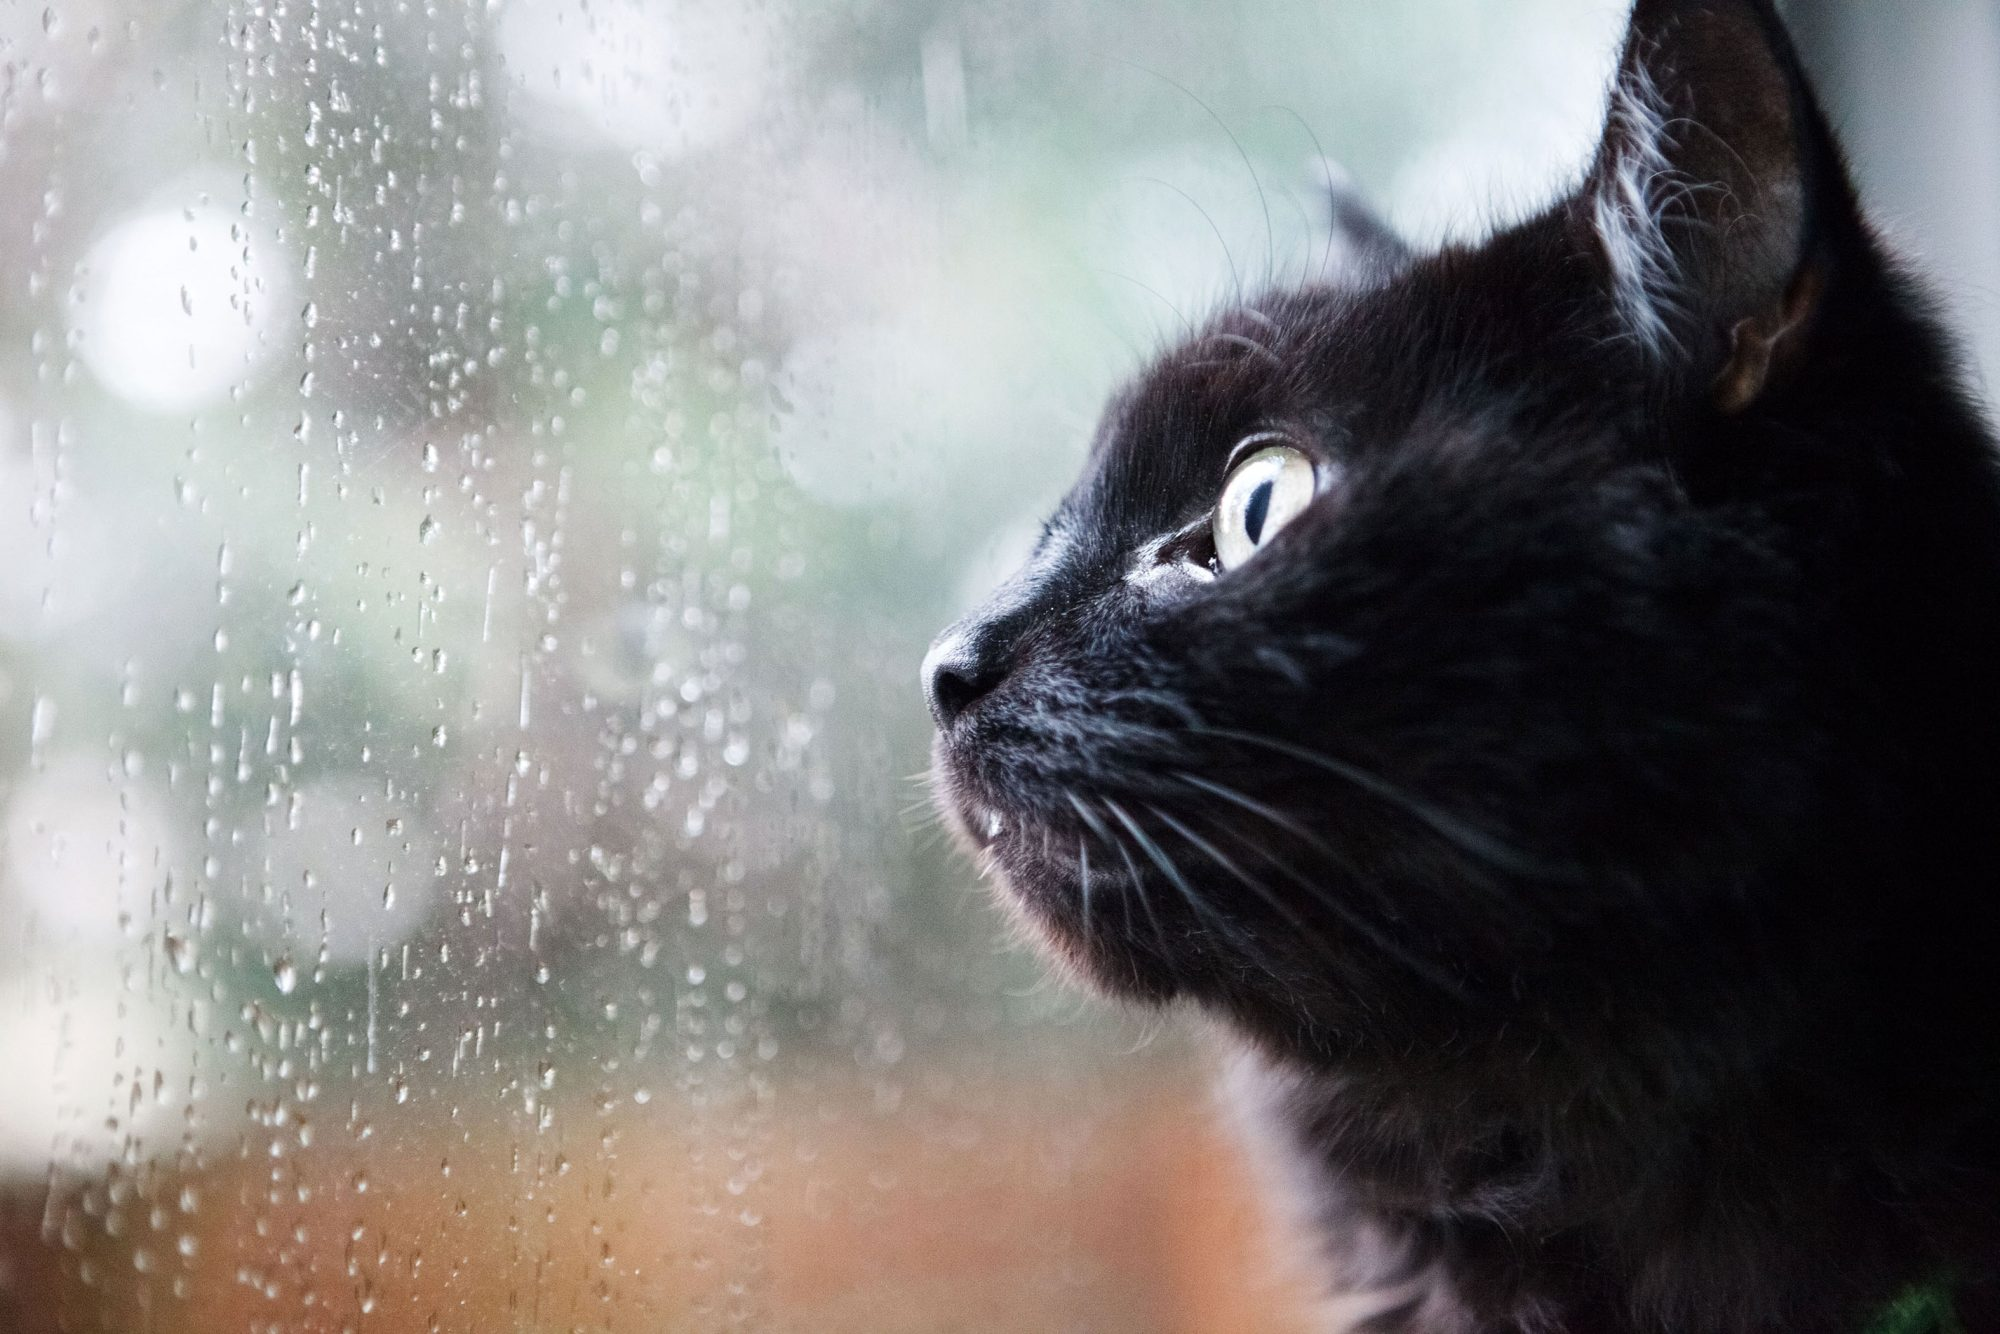 black short hair cat looking out window